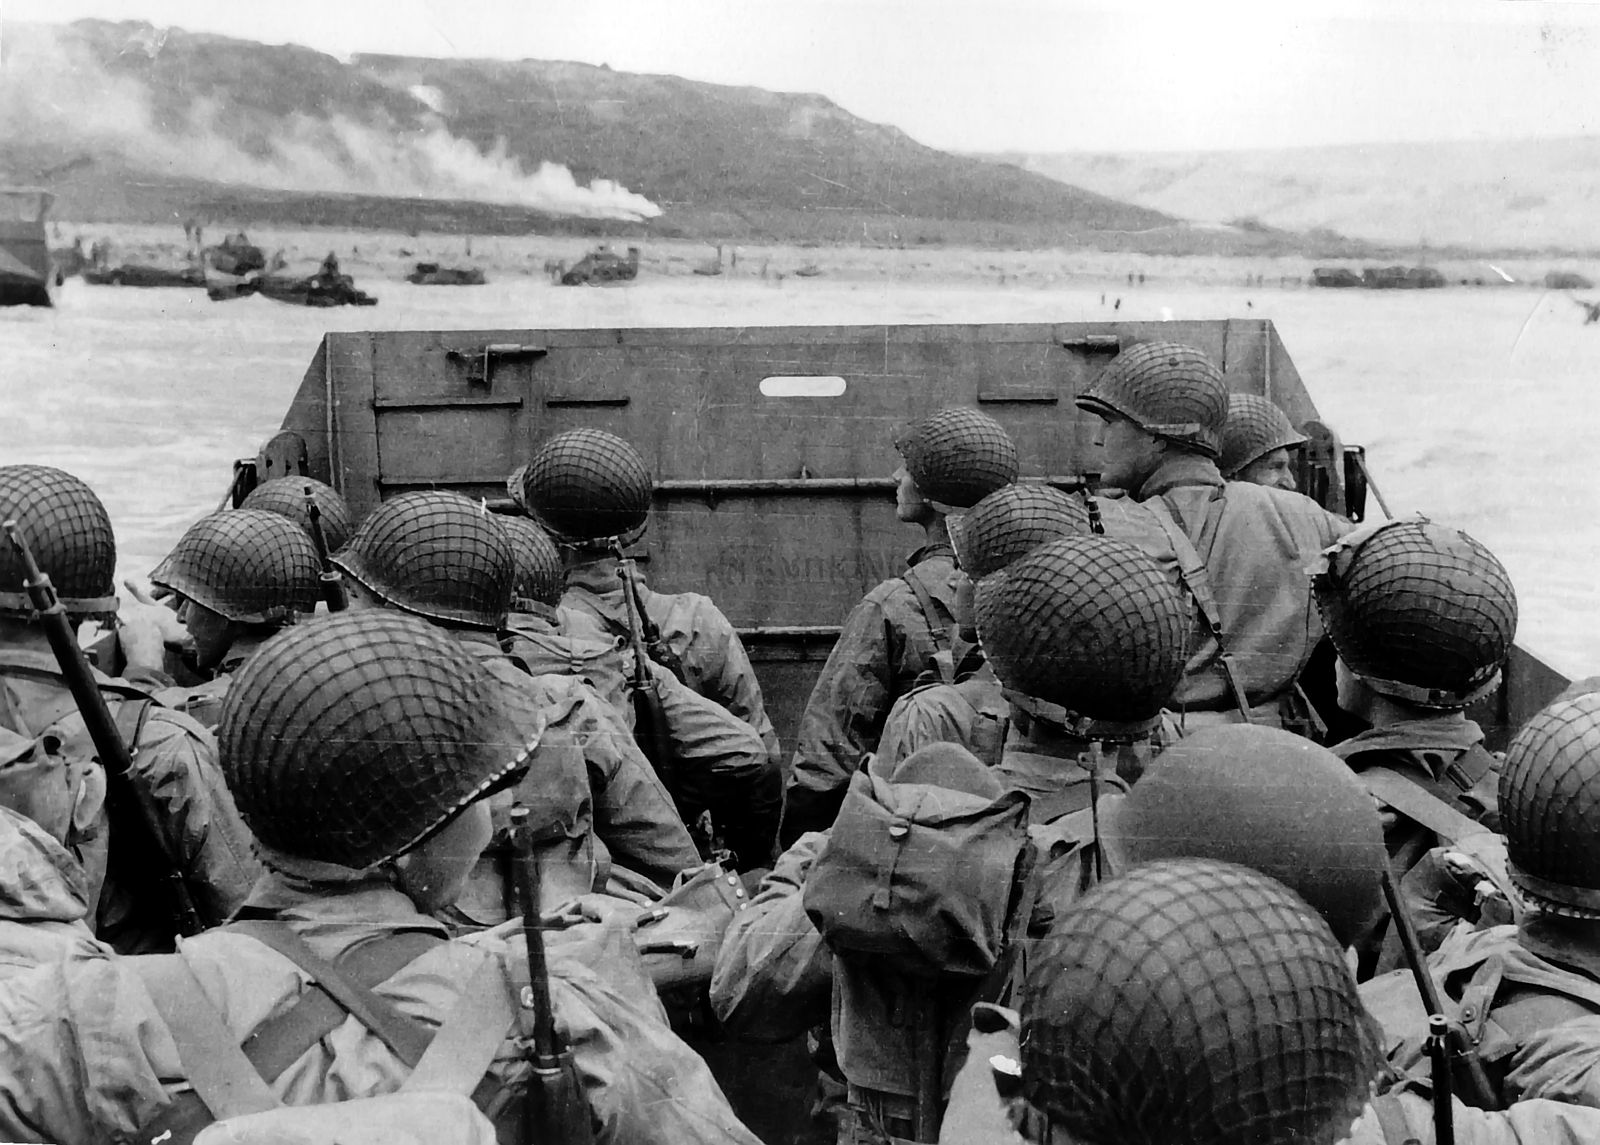 """Troops in an LCVP landing craft approaching """"Omaha"""" Beach on """"D-Day"""", 6 June 1944. Photograph from the Army Signal Corps Collection in the U.S. National Archives.  The original uploader was  Taak at English Wikipedia."""